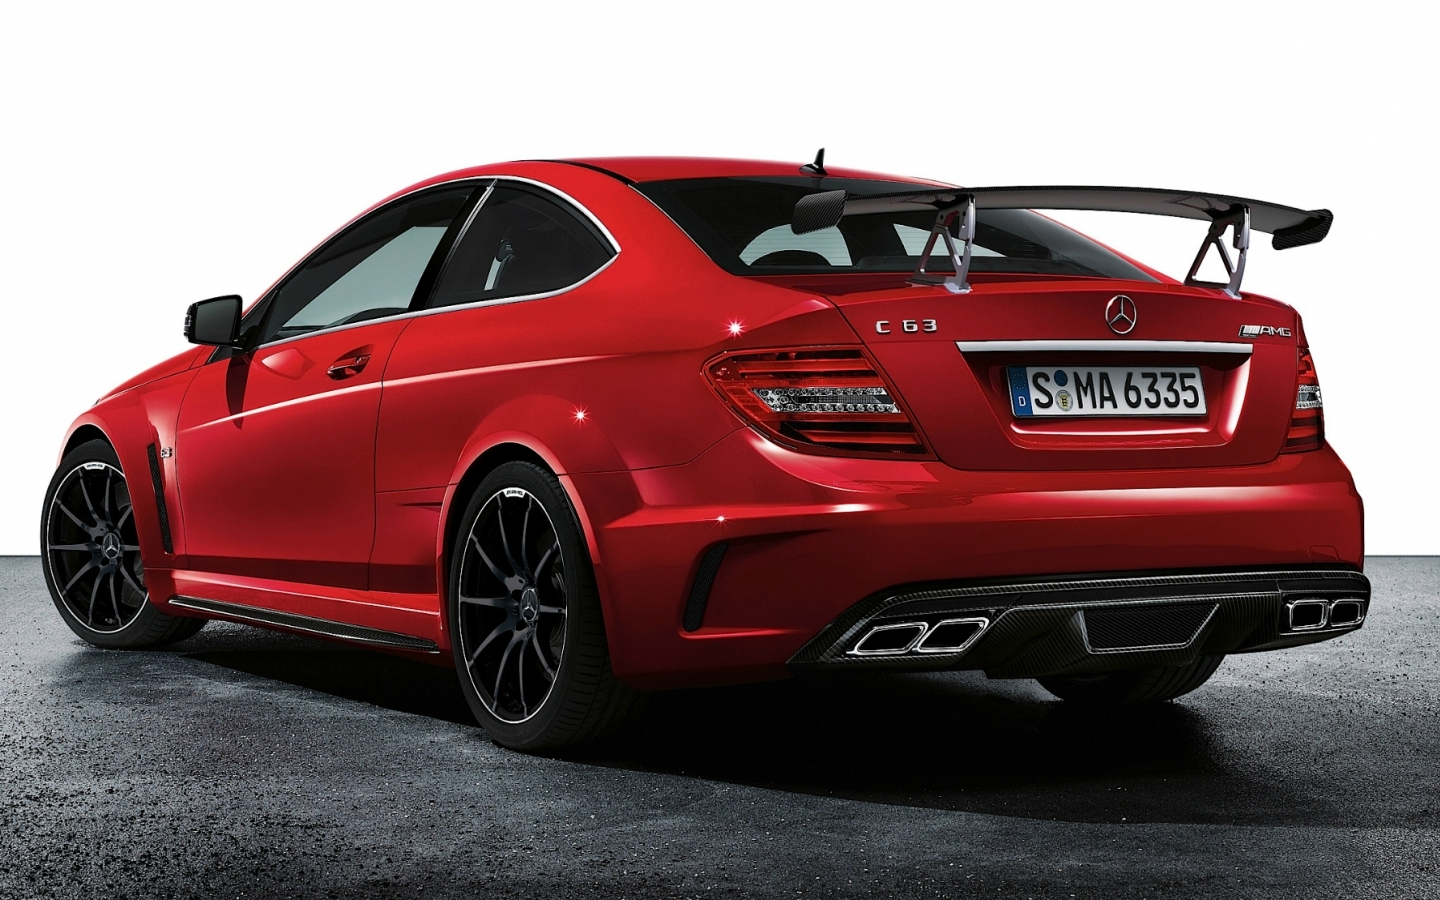 mercedes benz c63 amg coupe mercedes benz wallpaper 27649510 fanpop. Black Bedroom Furniture Sets. Home Design Ideas